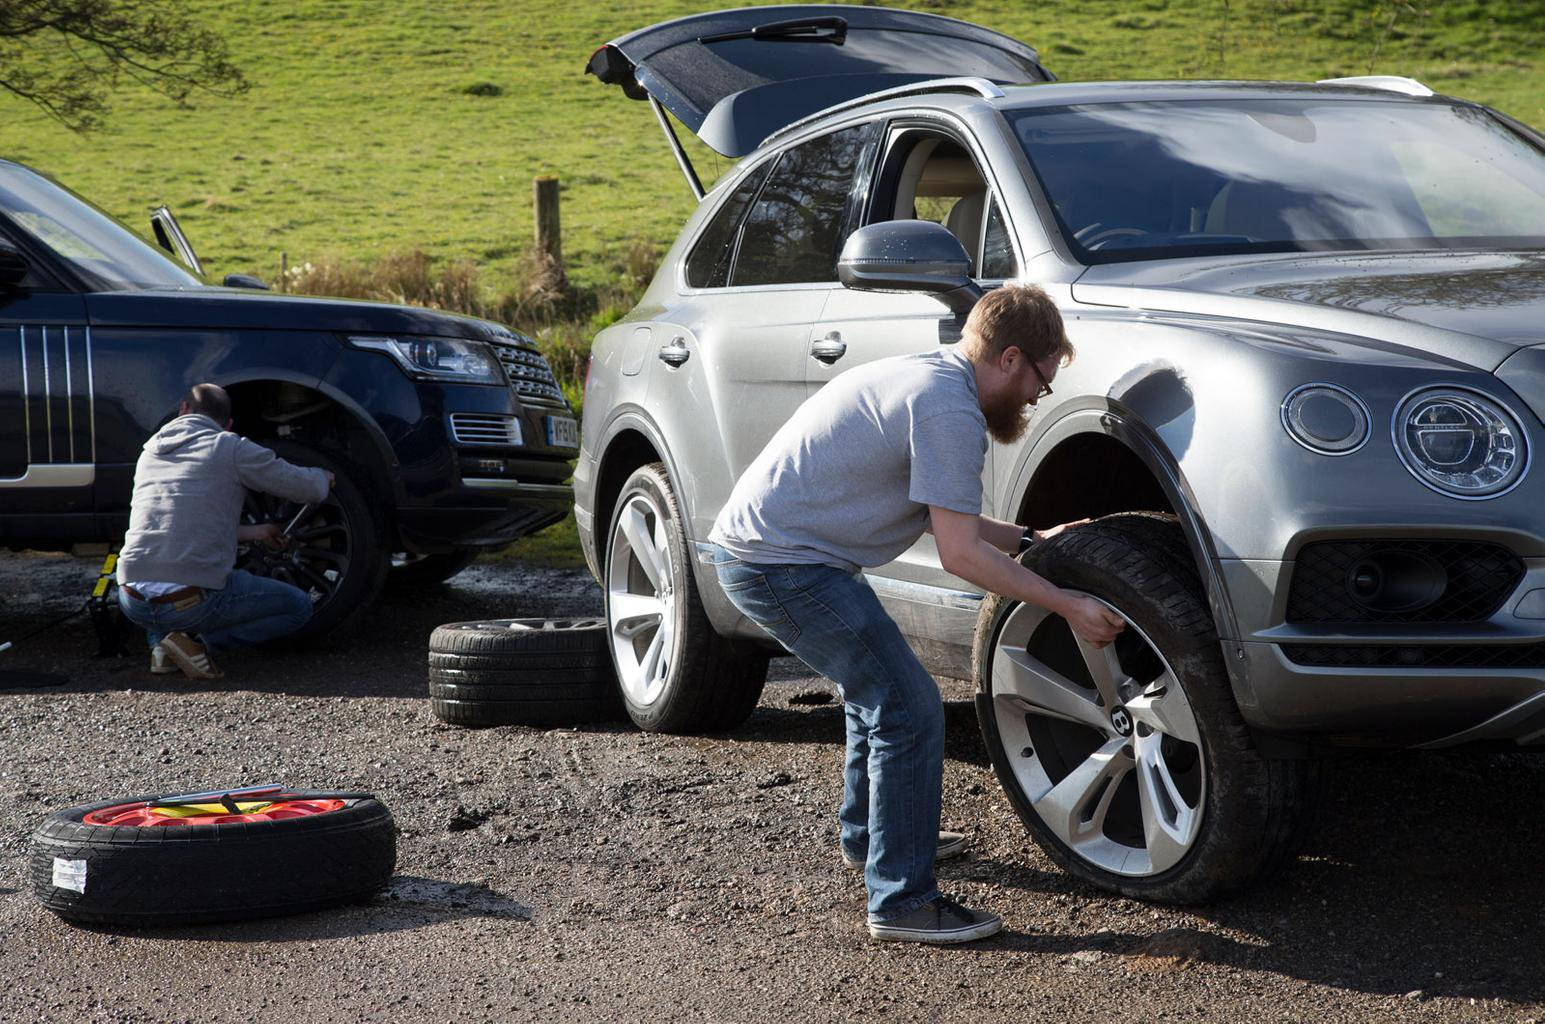 People changing wheels on cars